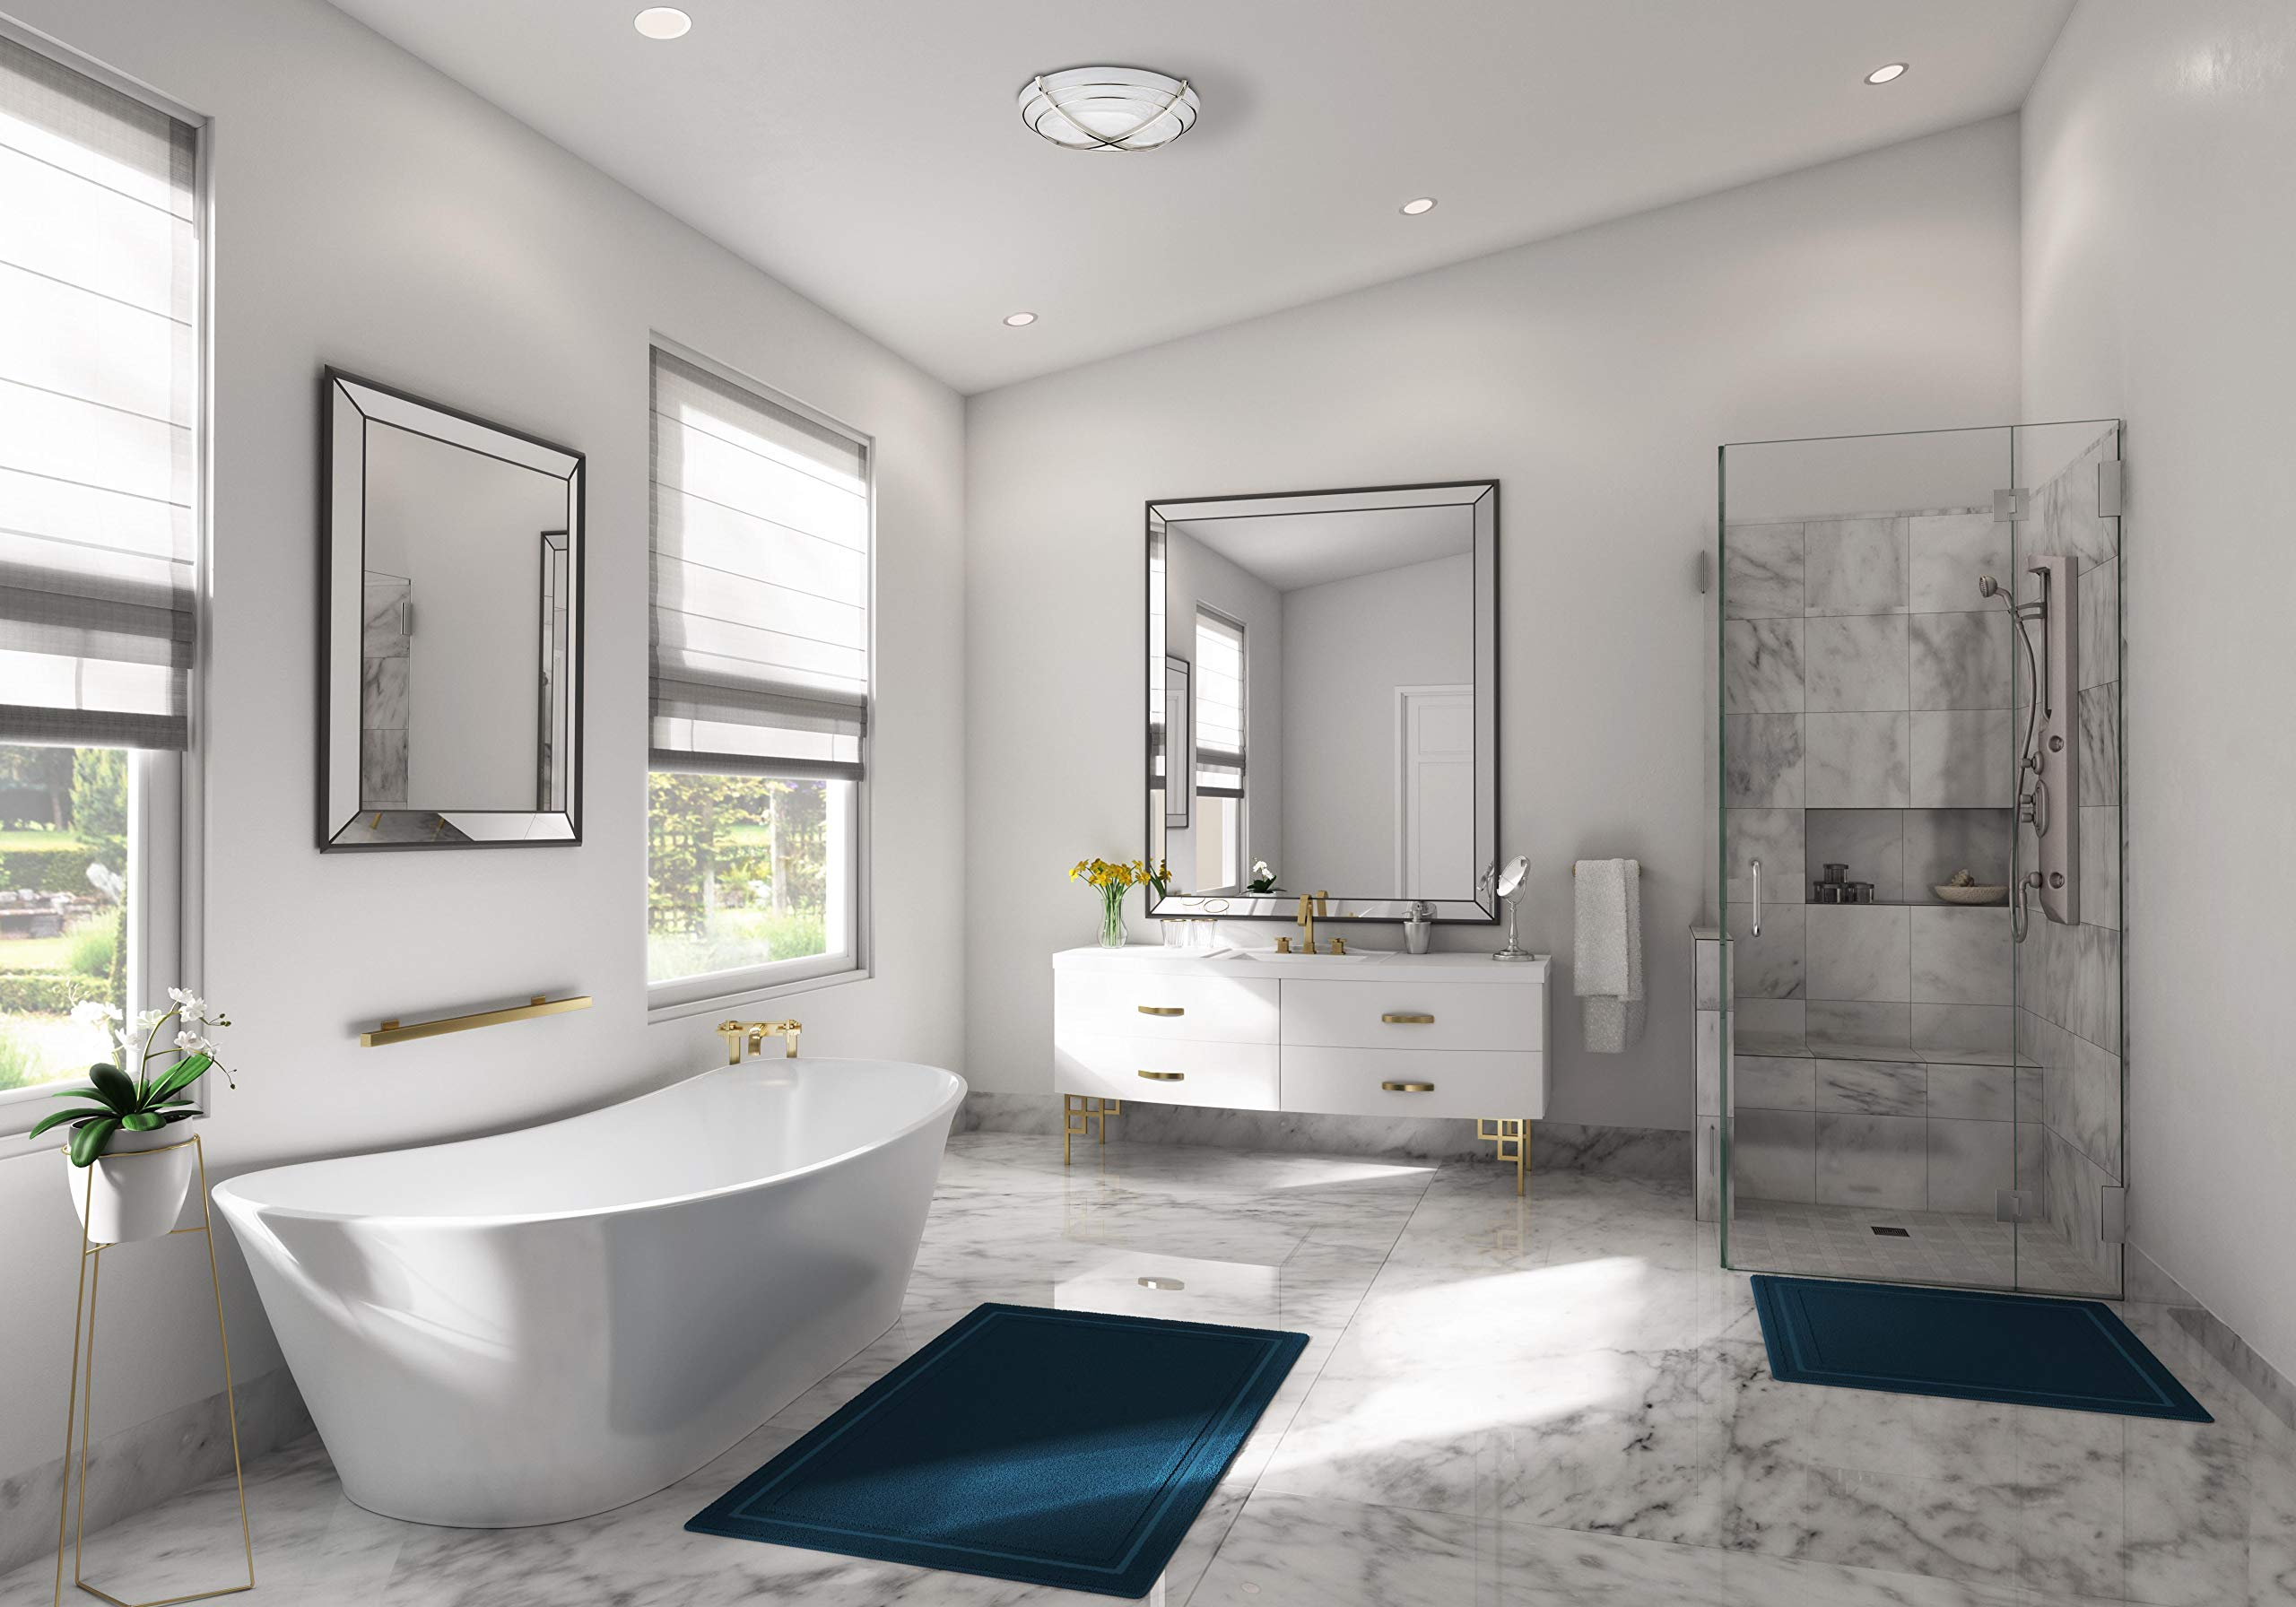 Hunter 81030 Halcyon Bathroom Exhaust Fan and Light in Contemporary Cast Chrome by Hunter Home Comfort (Image #3)